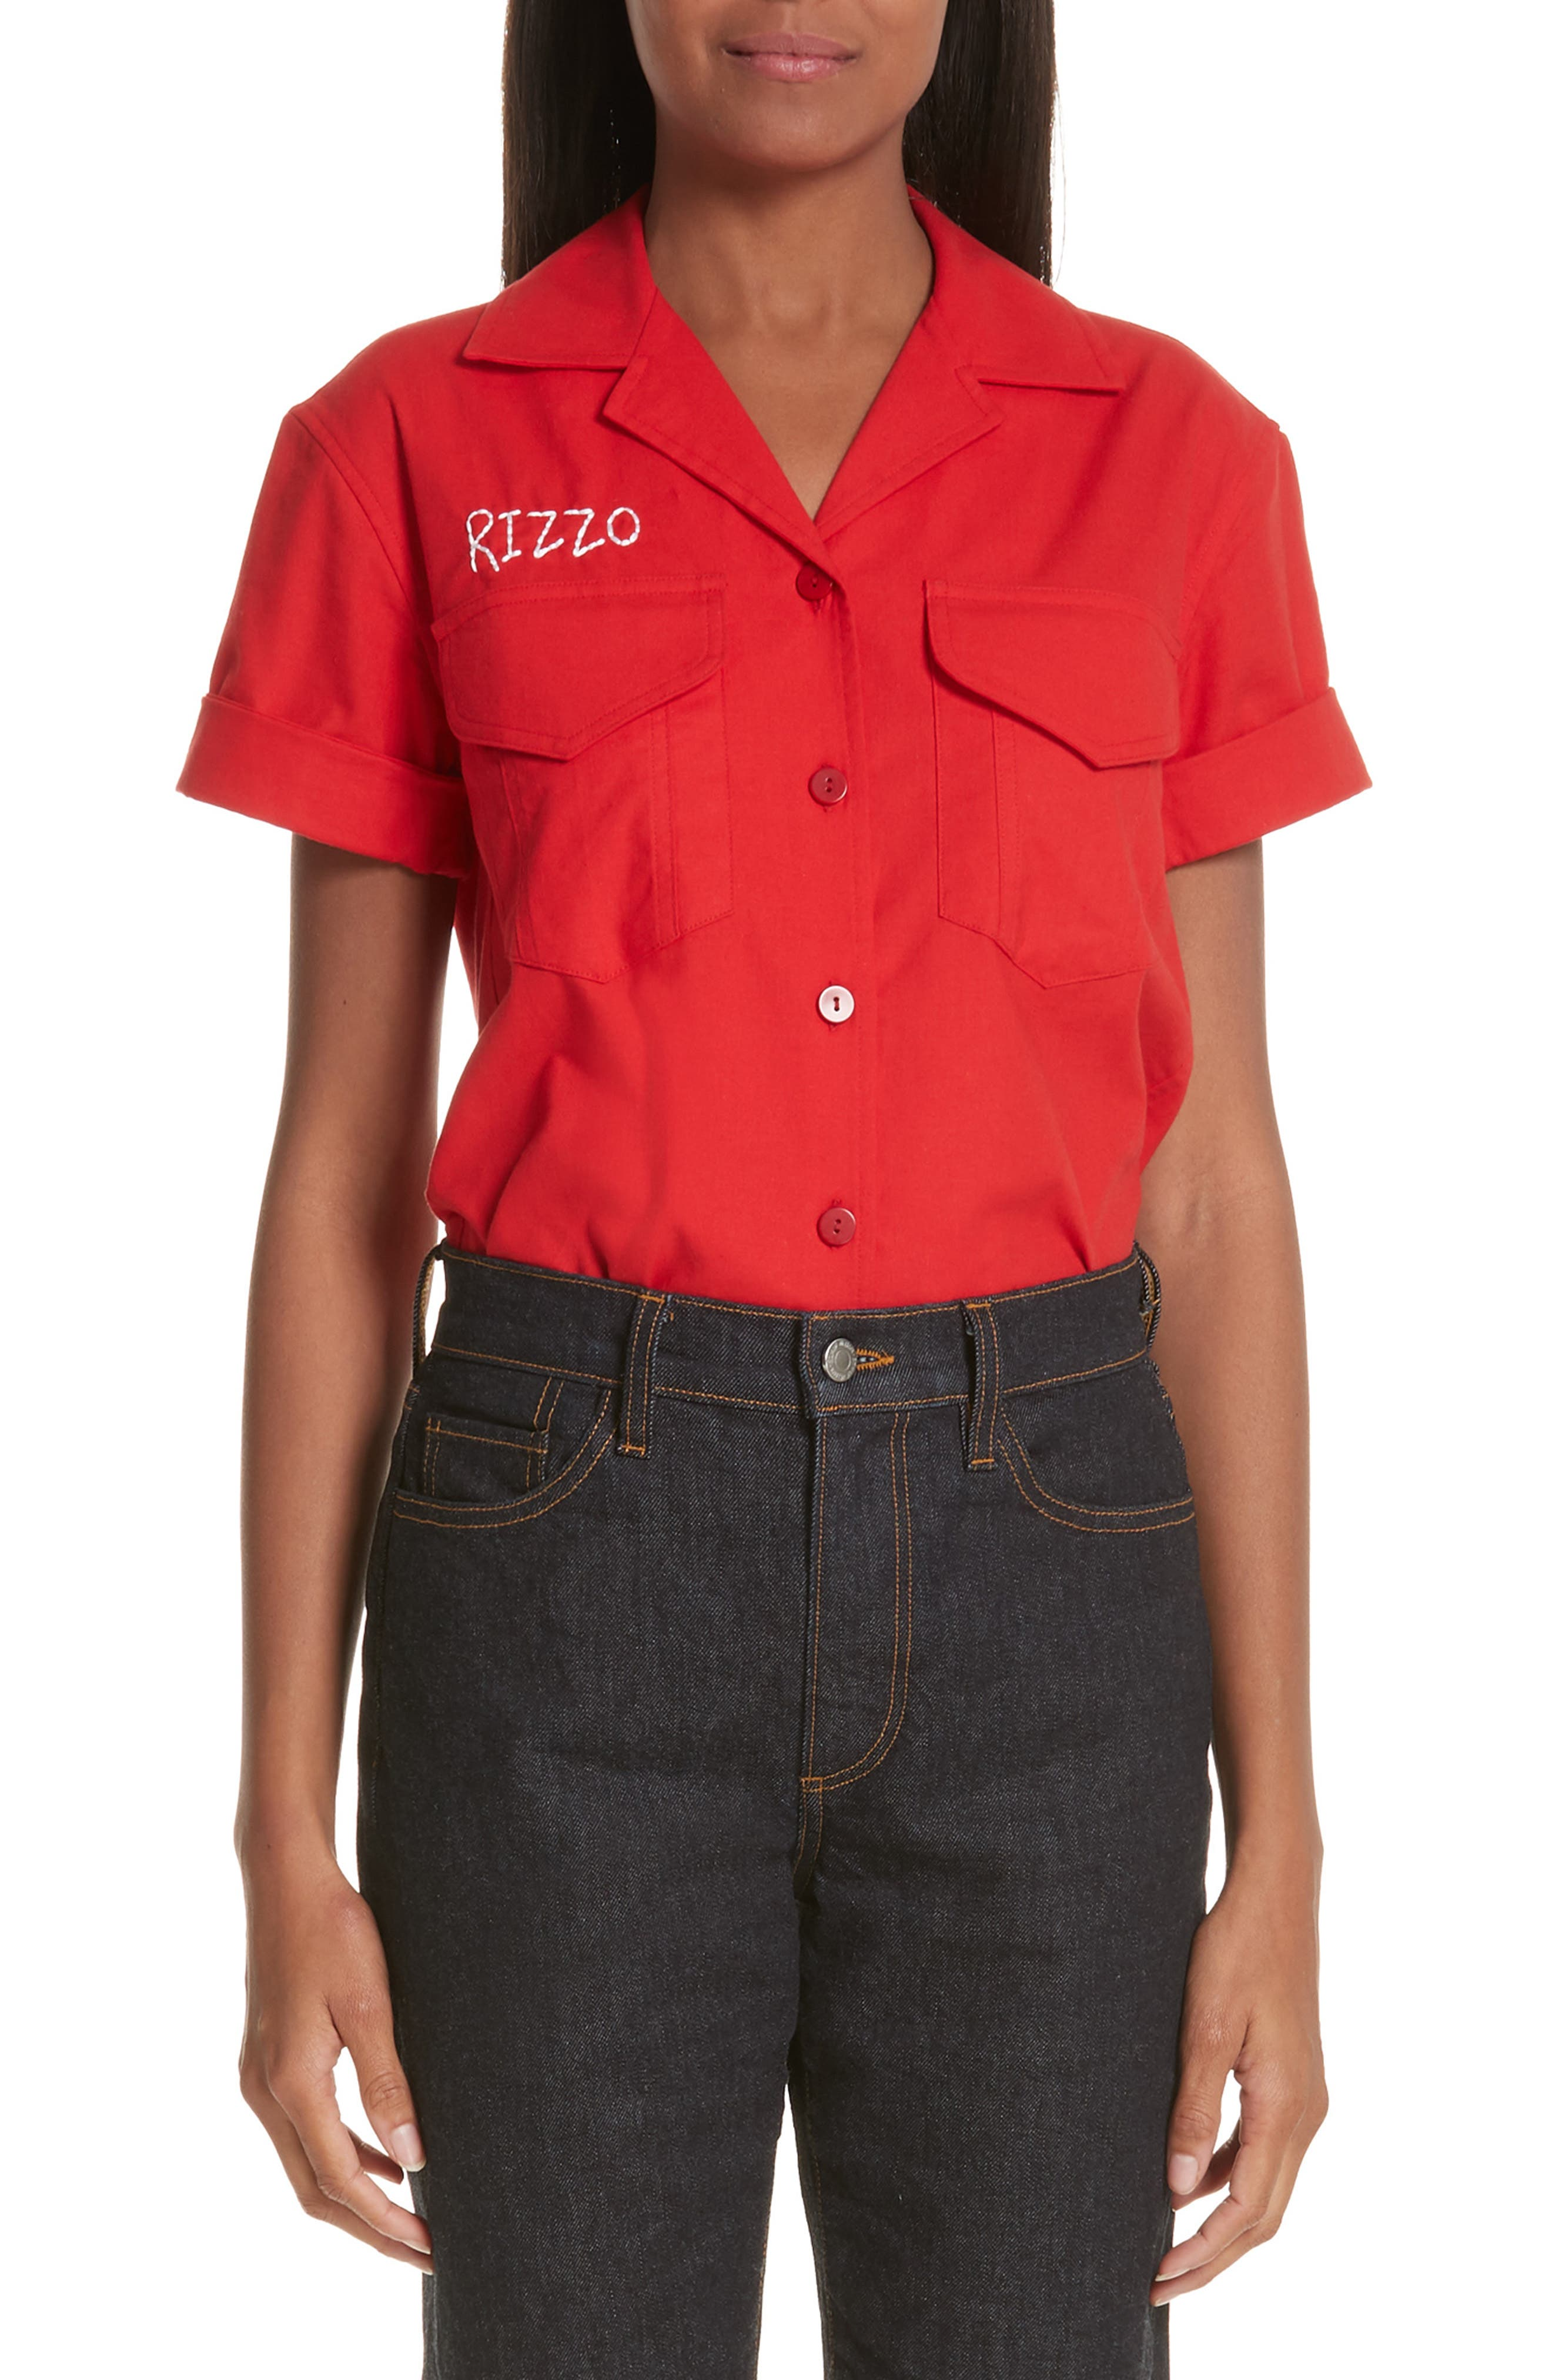 x Paramount Grease Rizzo Embroidered Mechanic Shirt,                         Main,                         color, RIZZO RED